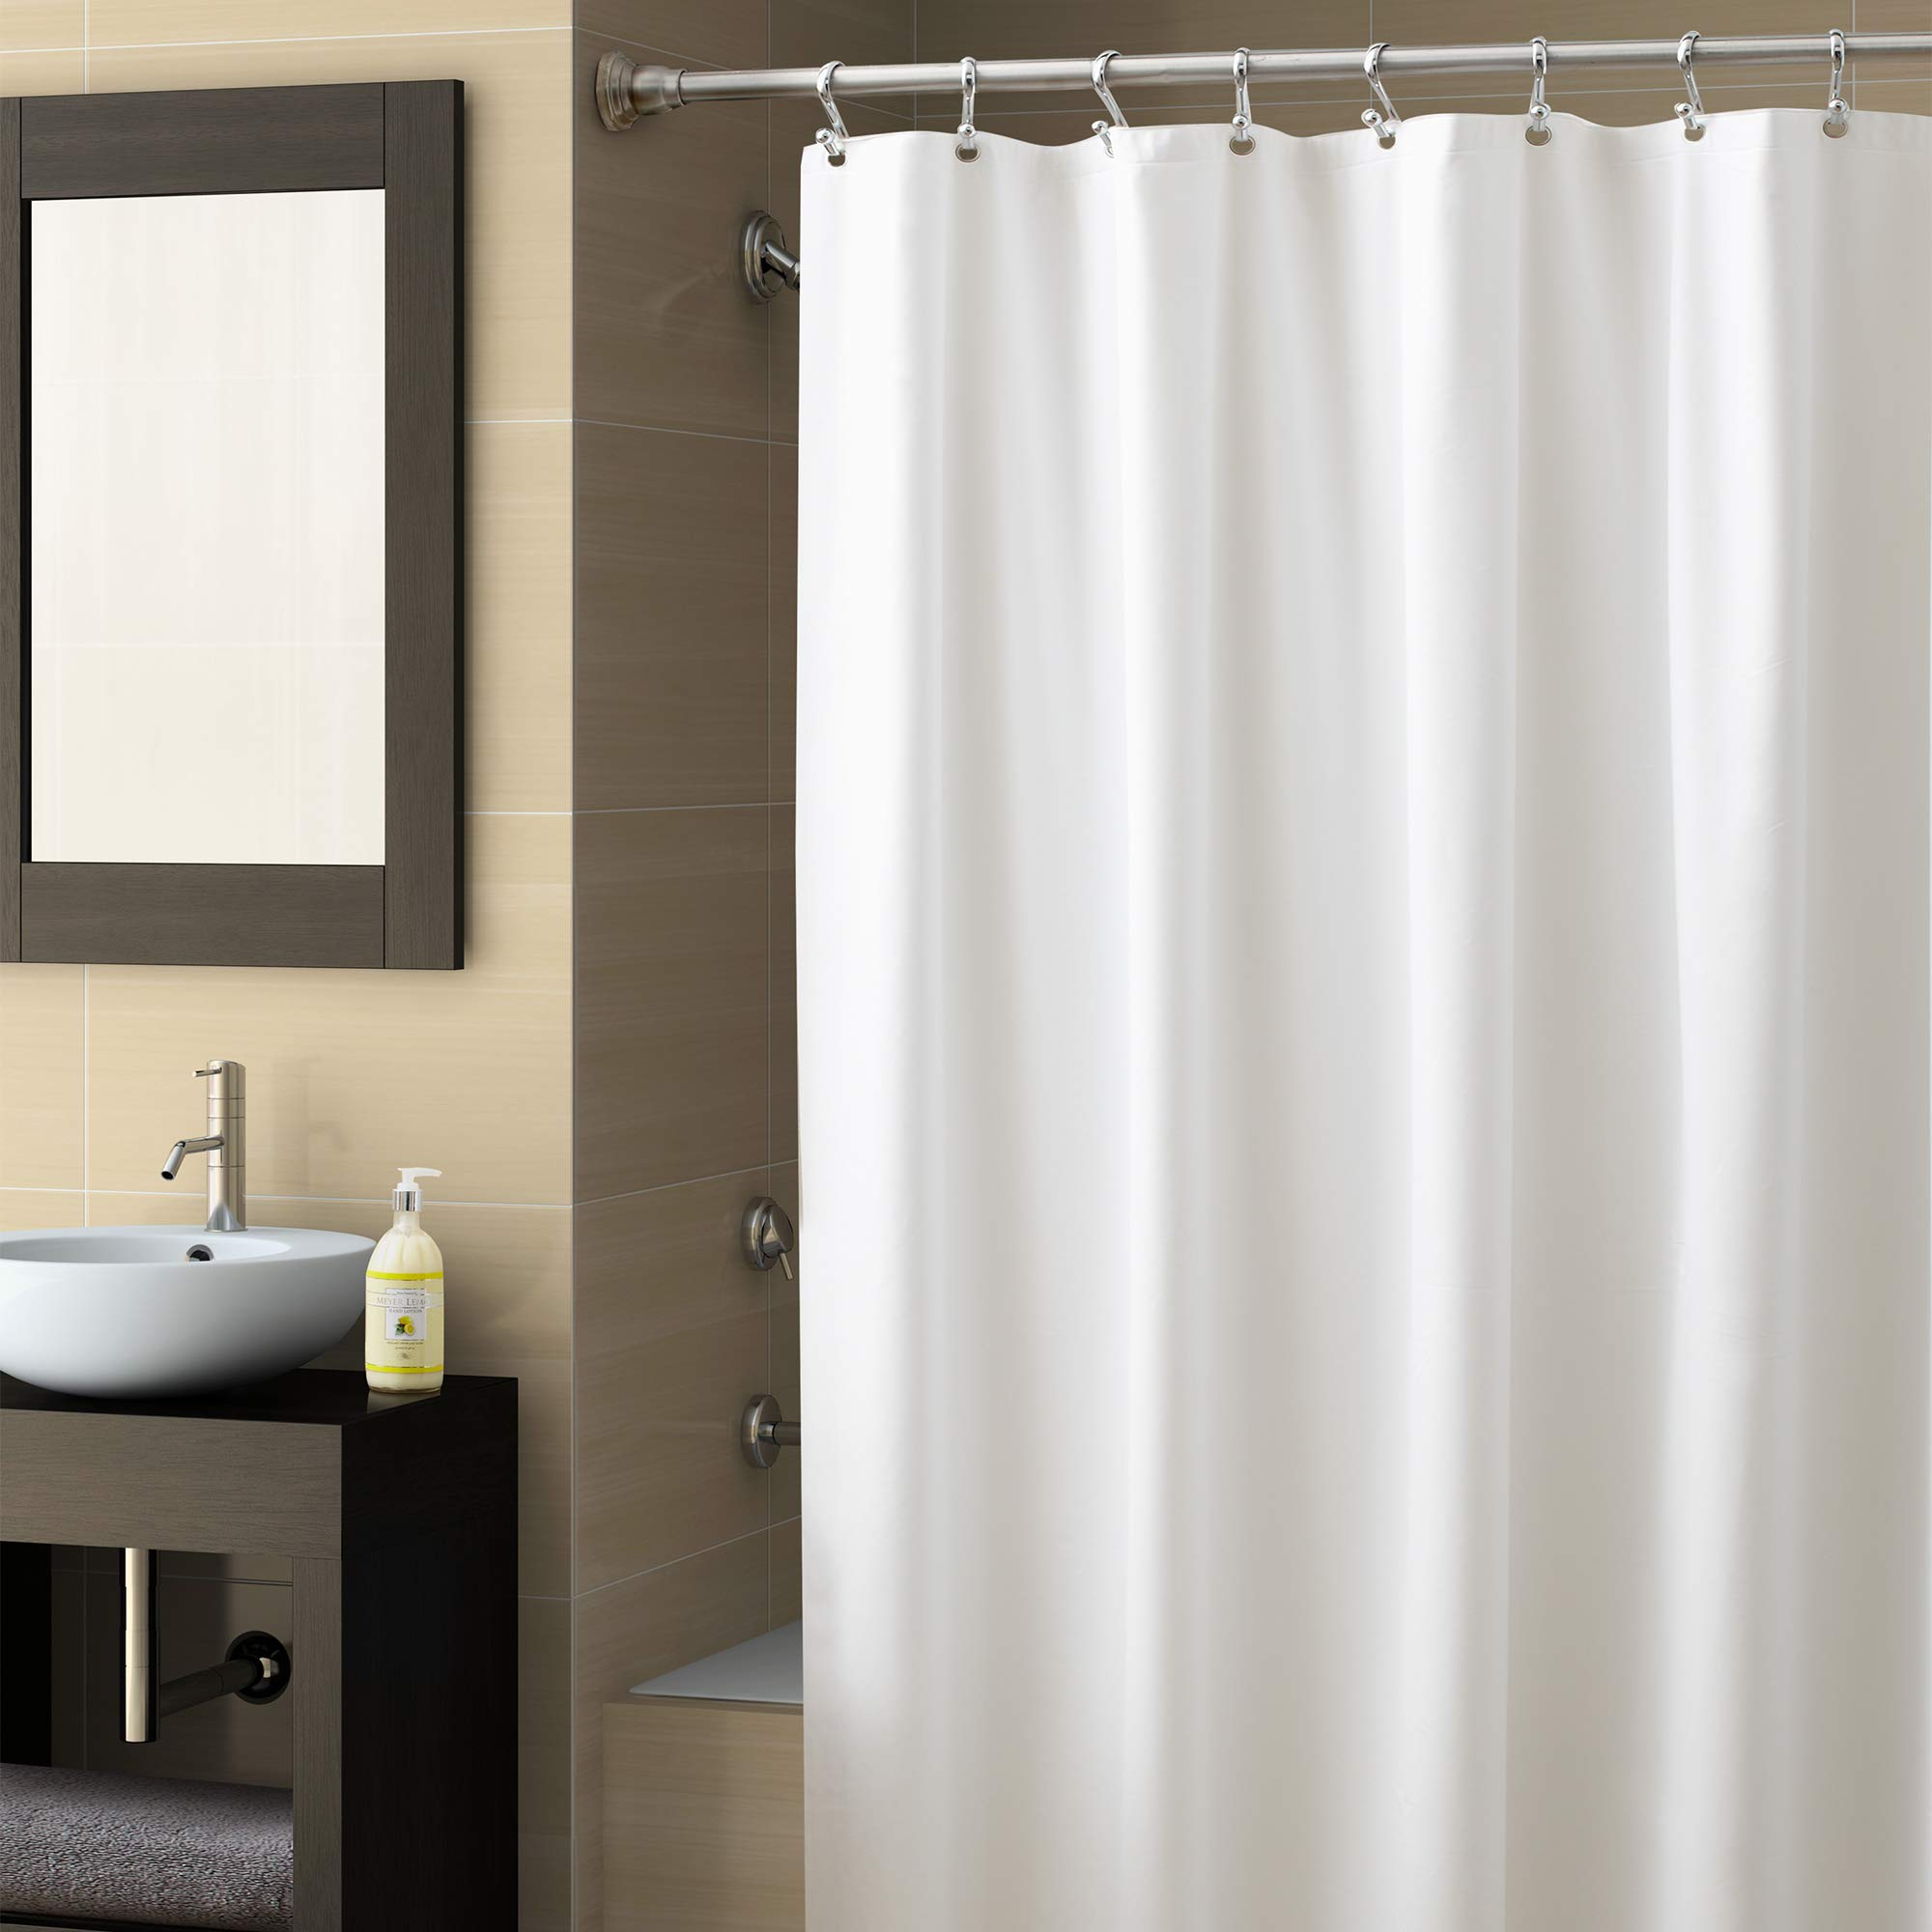 """EXCELL Home Fashions Best Quality Vinyl Shower Curtain Liner, Mold and Mildew-Resistant Water-Repellent Bath Liner with suction cups for Master Bathroom,Kid's Bathroom, Guest Bathroom, 70""""x78"""", White"""